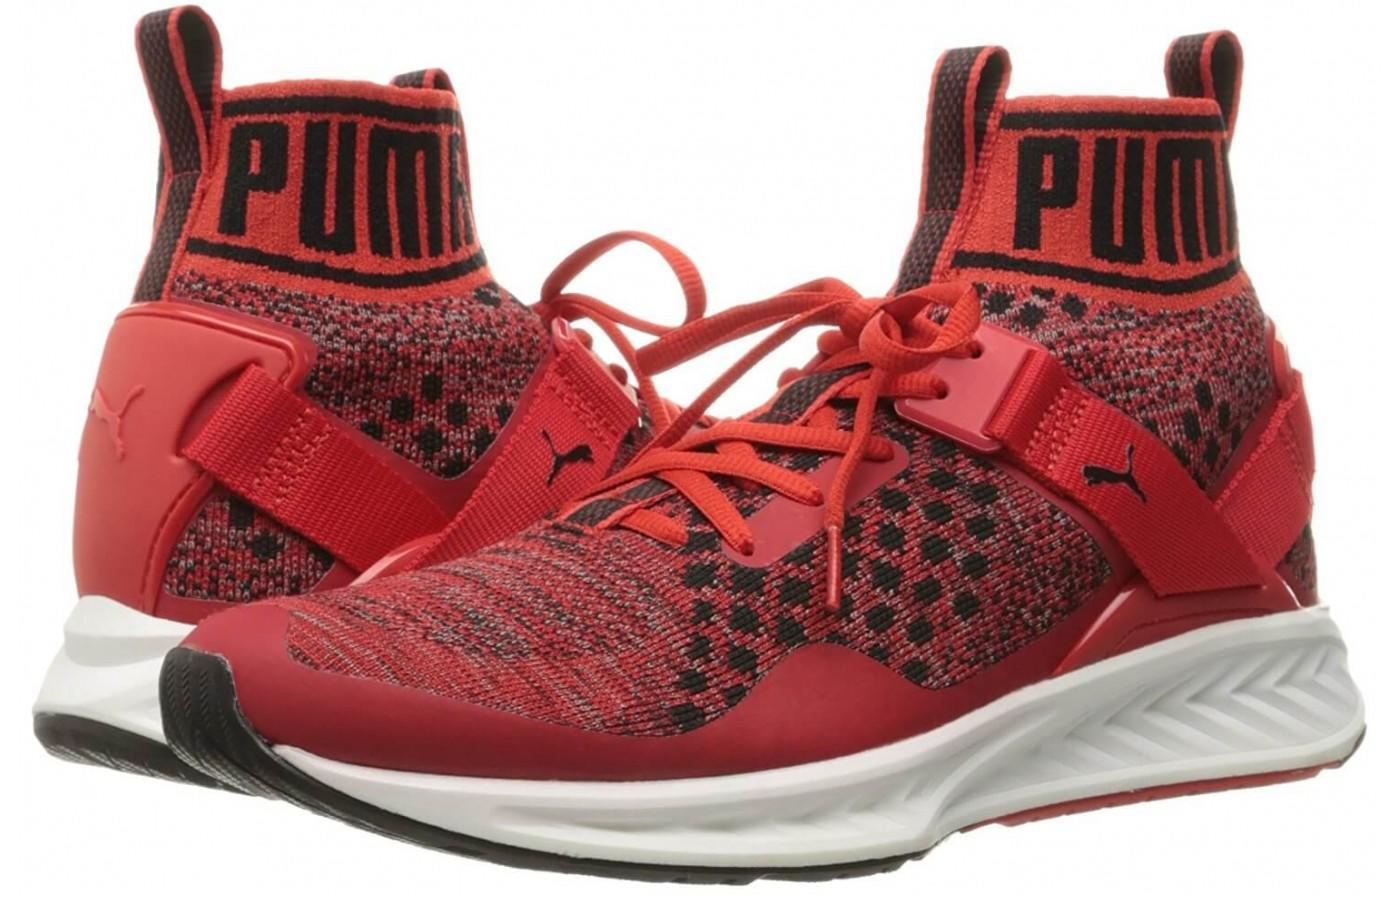 the Puma Ignite evoKnit has a retro style to their design